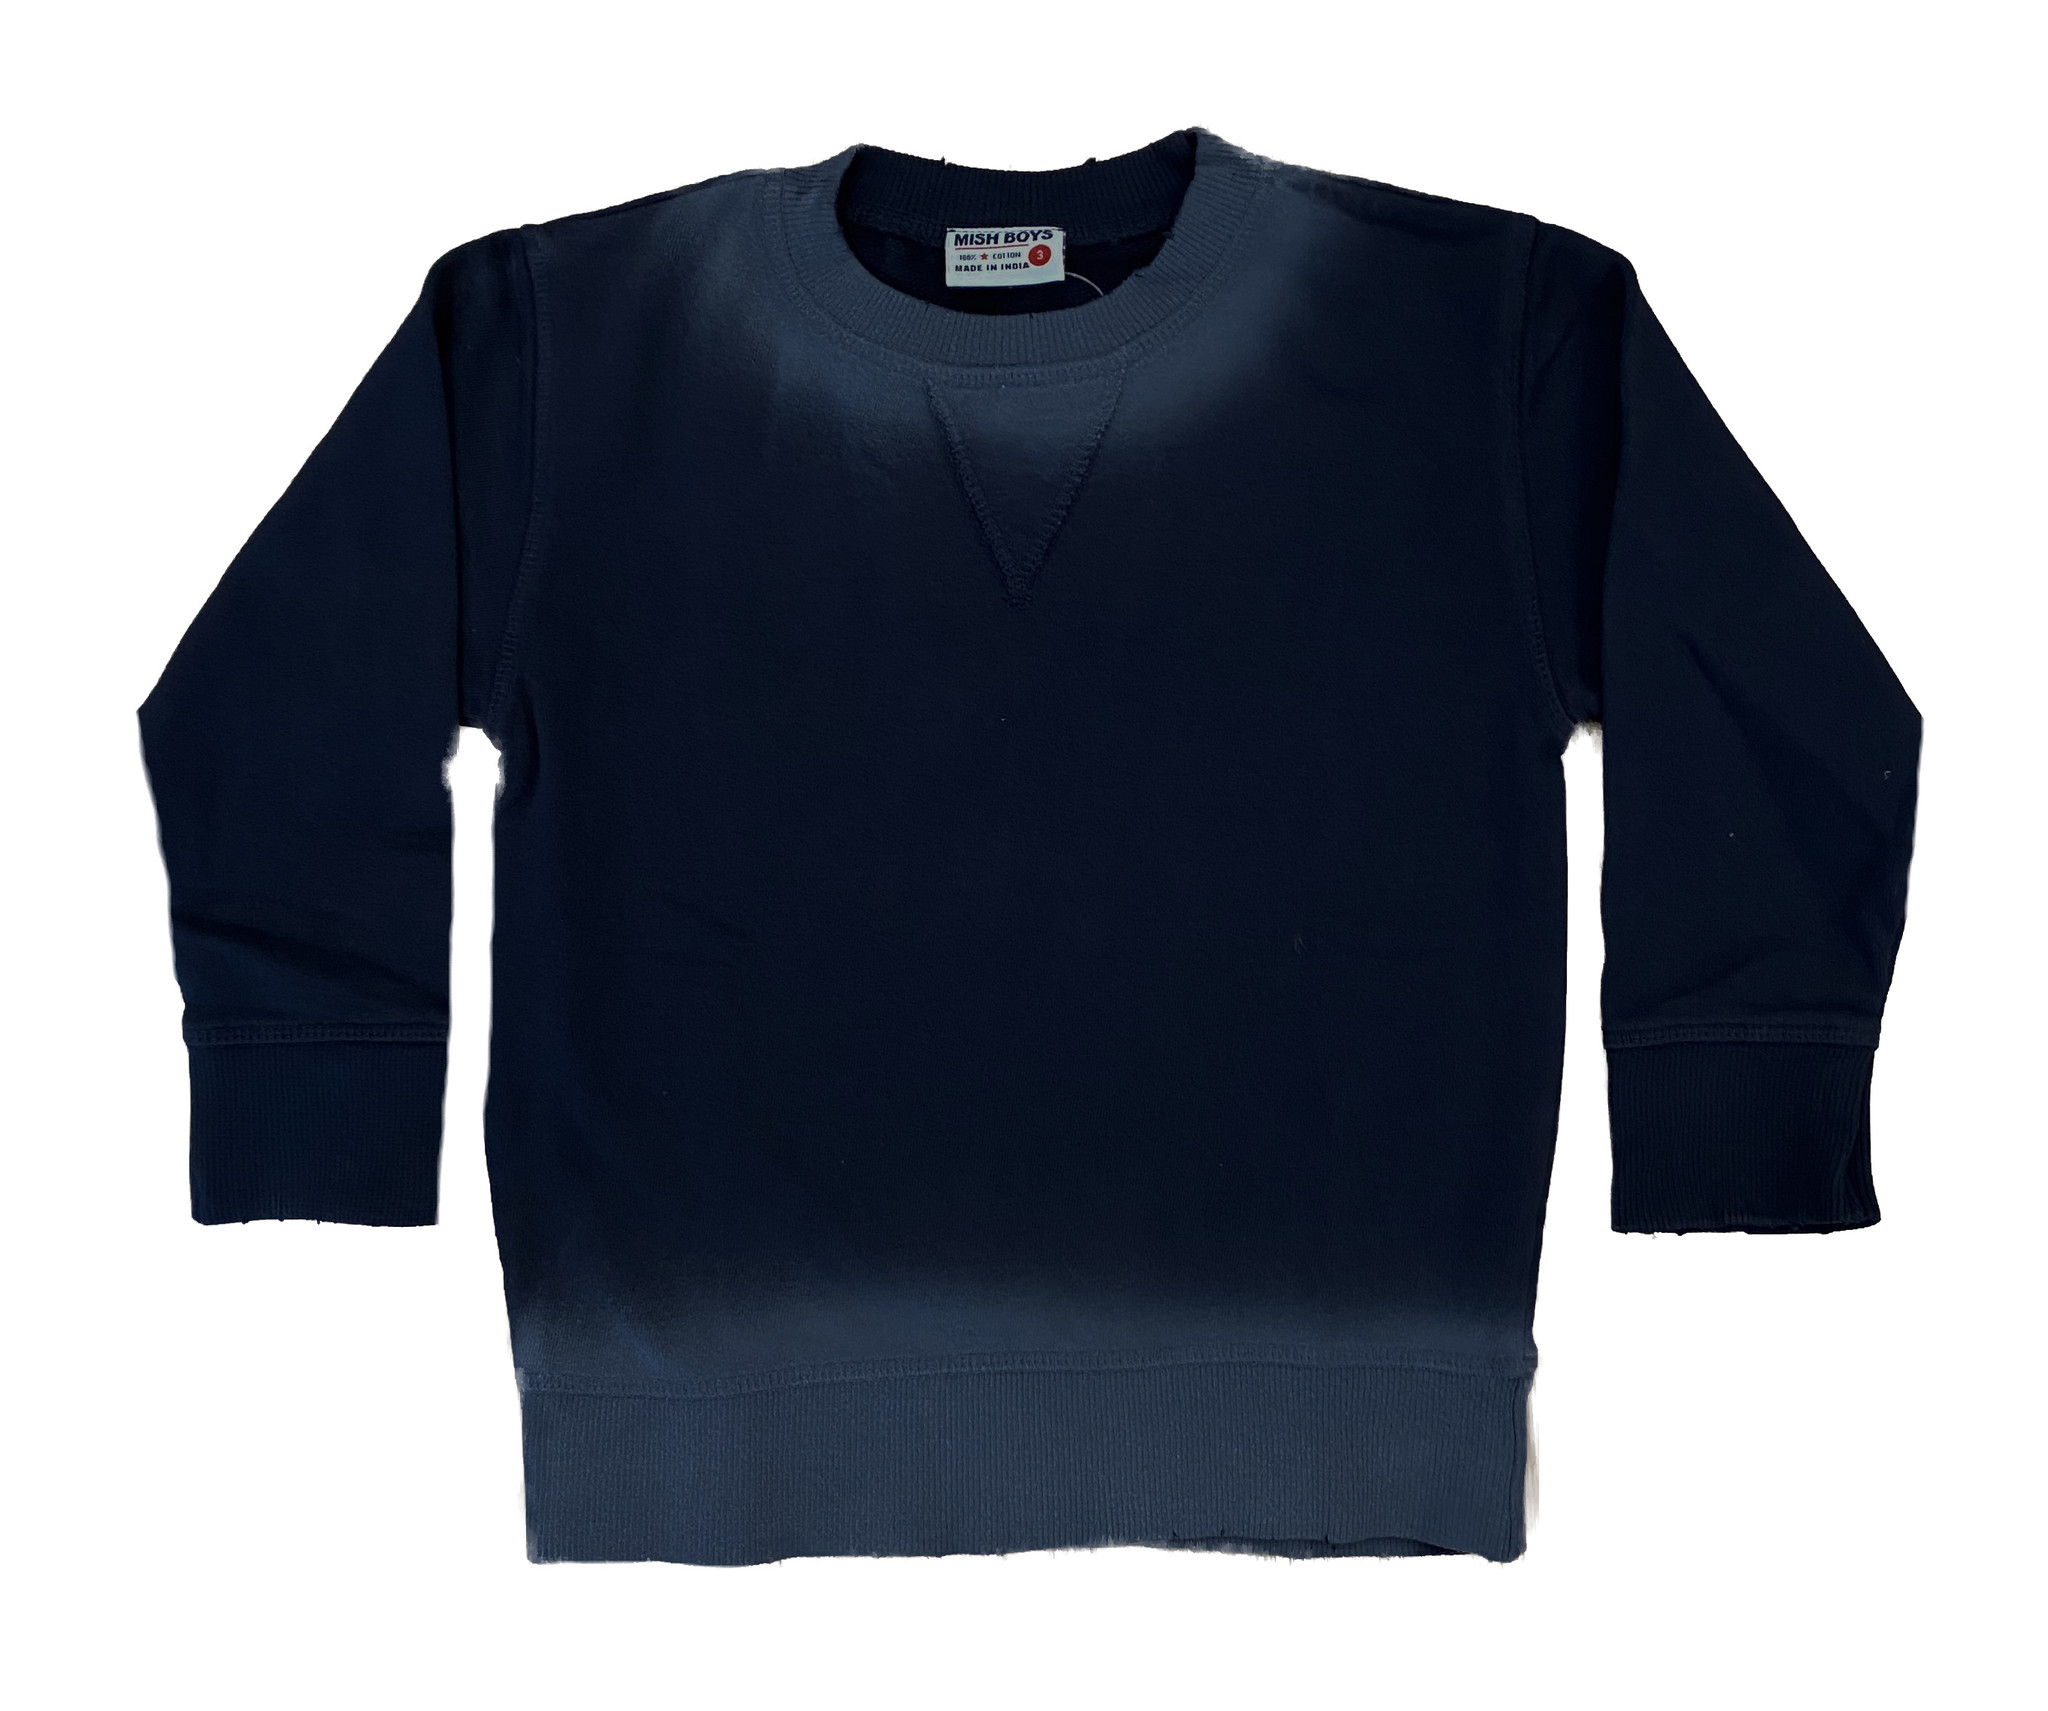 Mish Navy Ombre Infant Sweatshirt